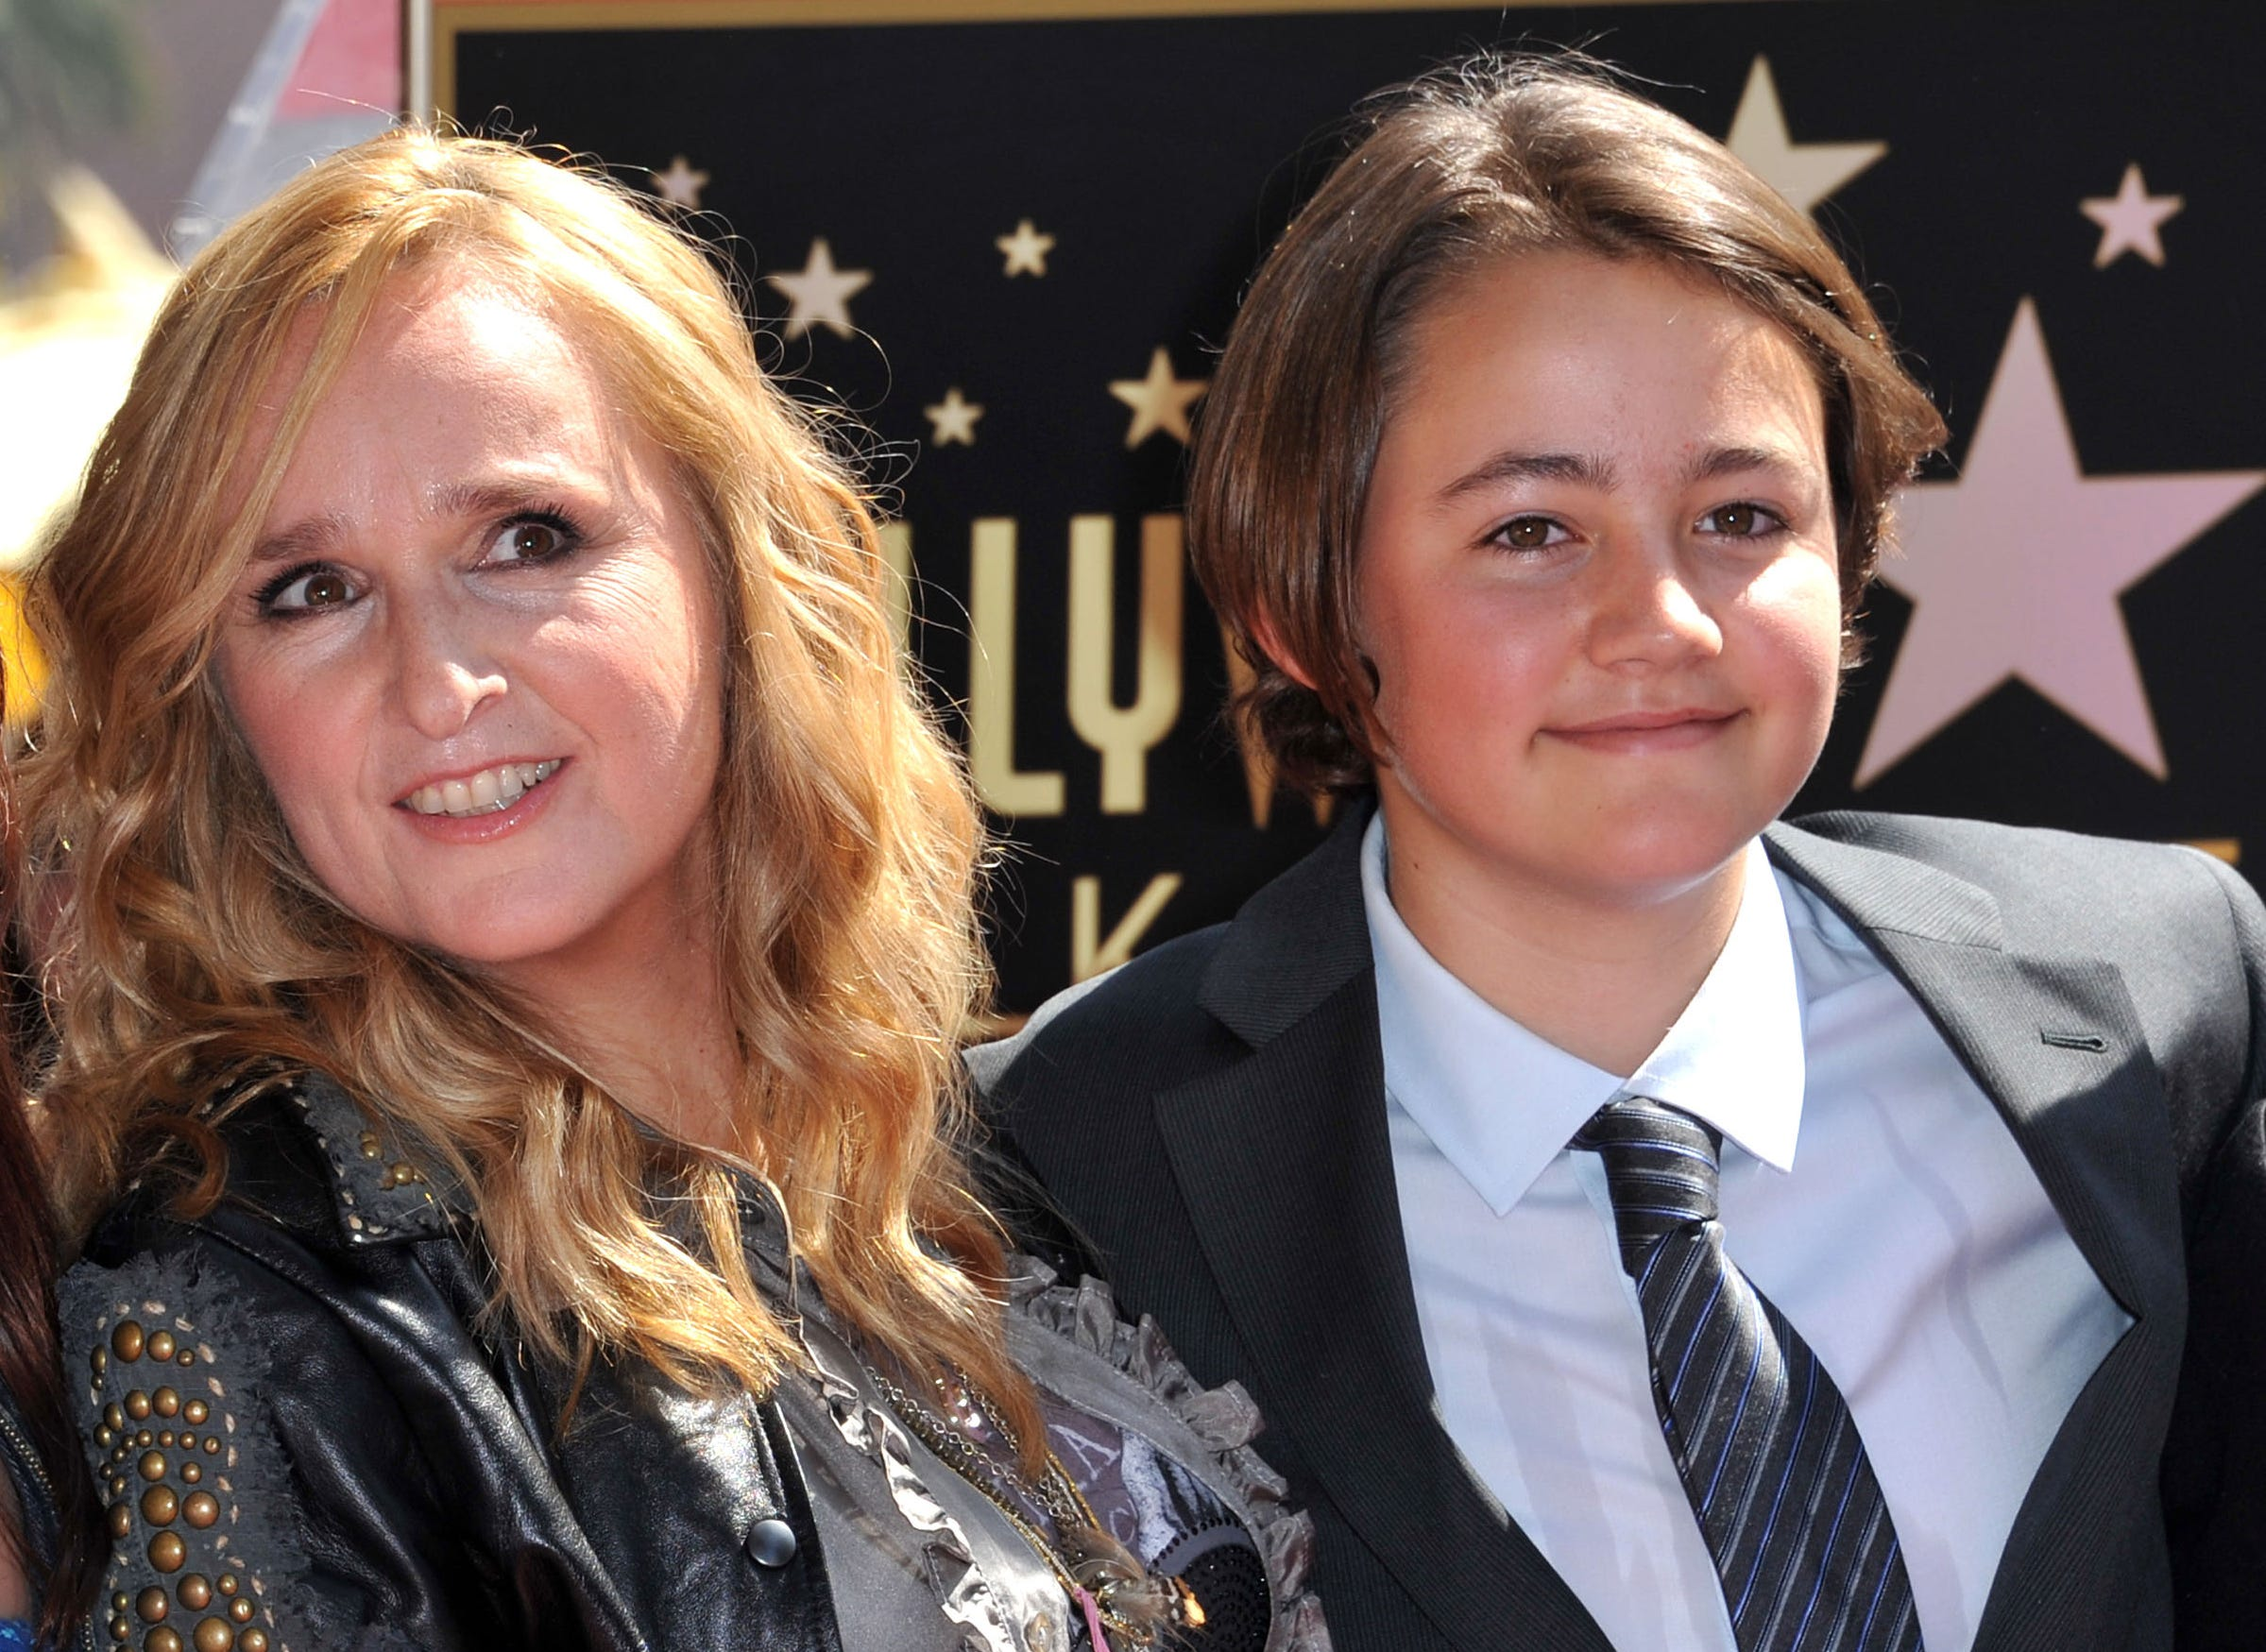 Melissa Etheridge s daughter pays tribute to brother Beckett, dead of opioid addiction at 21